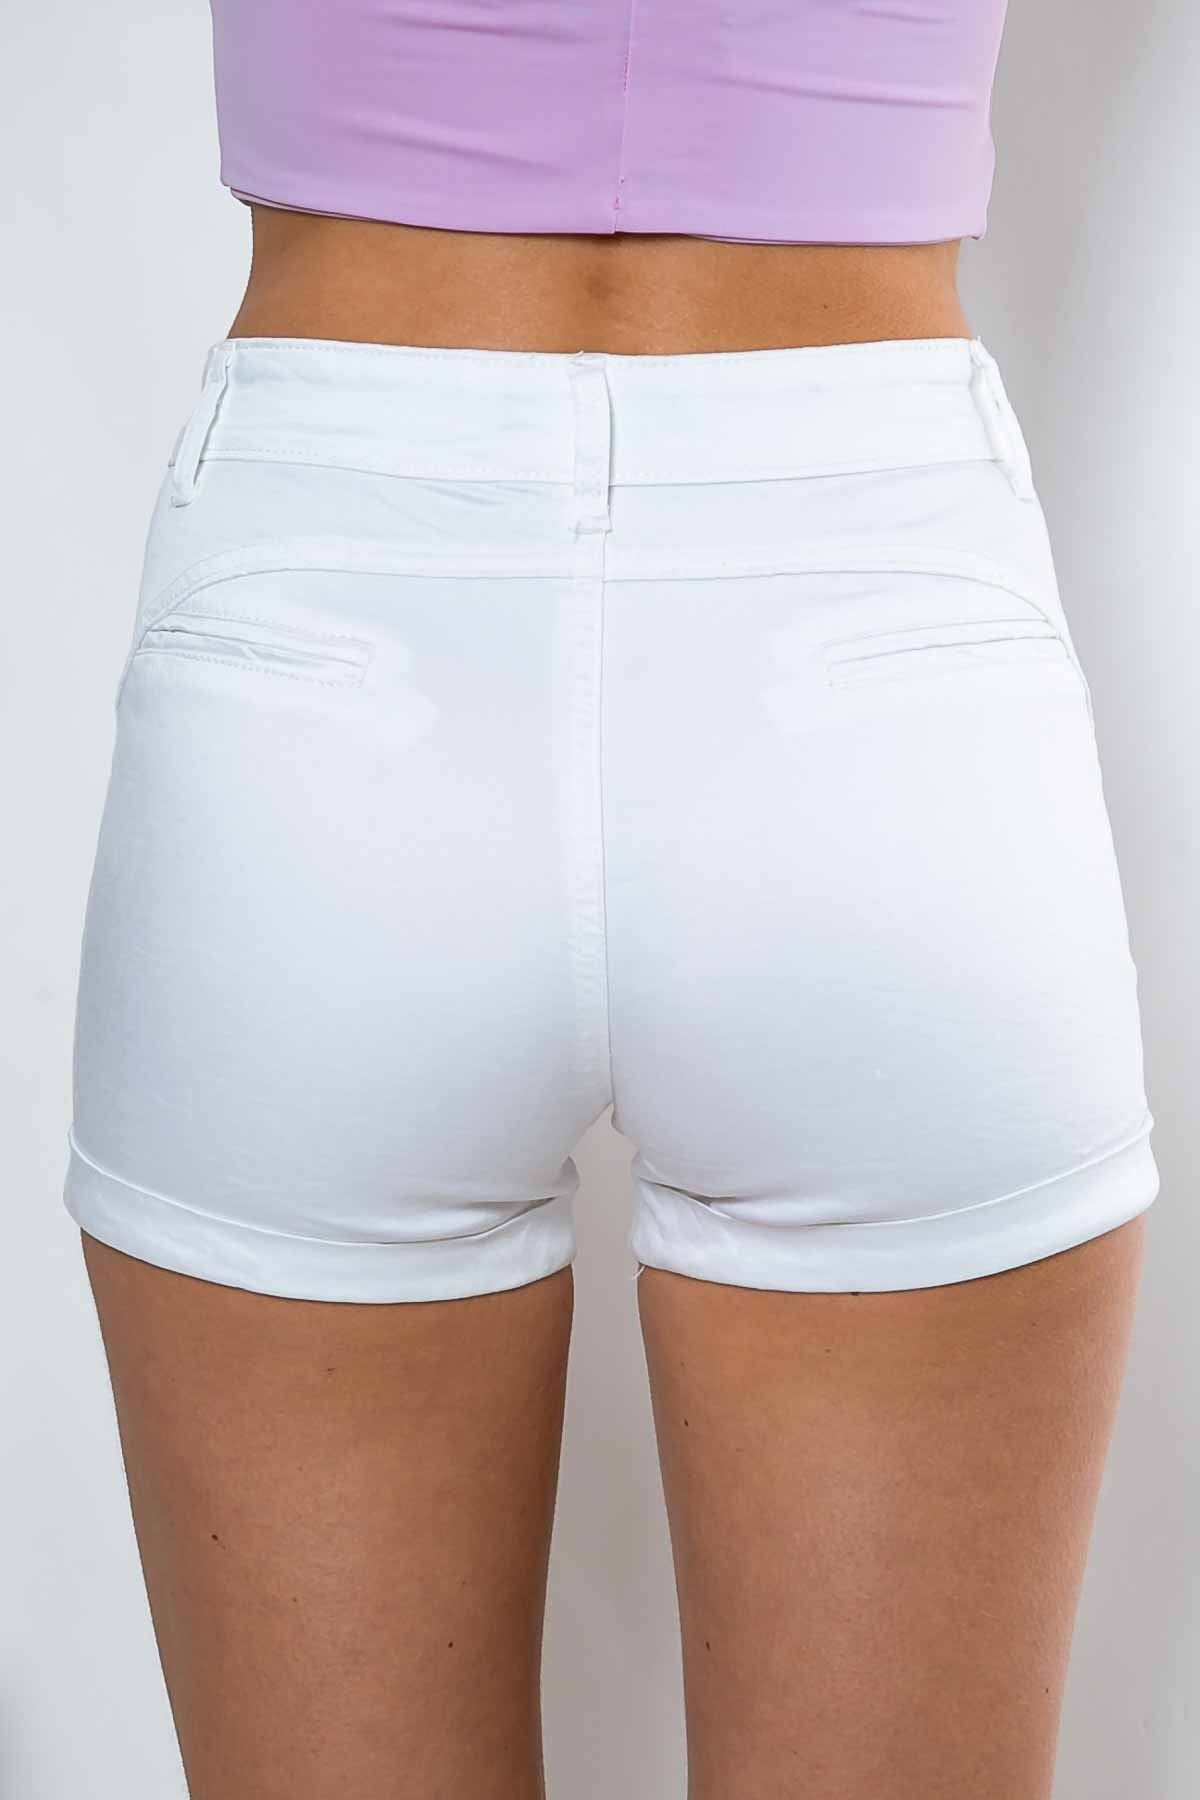 white shorts crop top - of course, crop tops look super chic over shorts. either yurtvjw